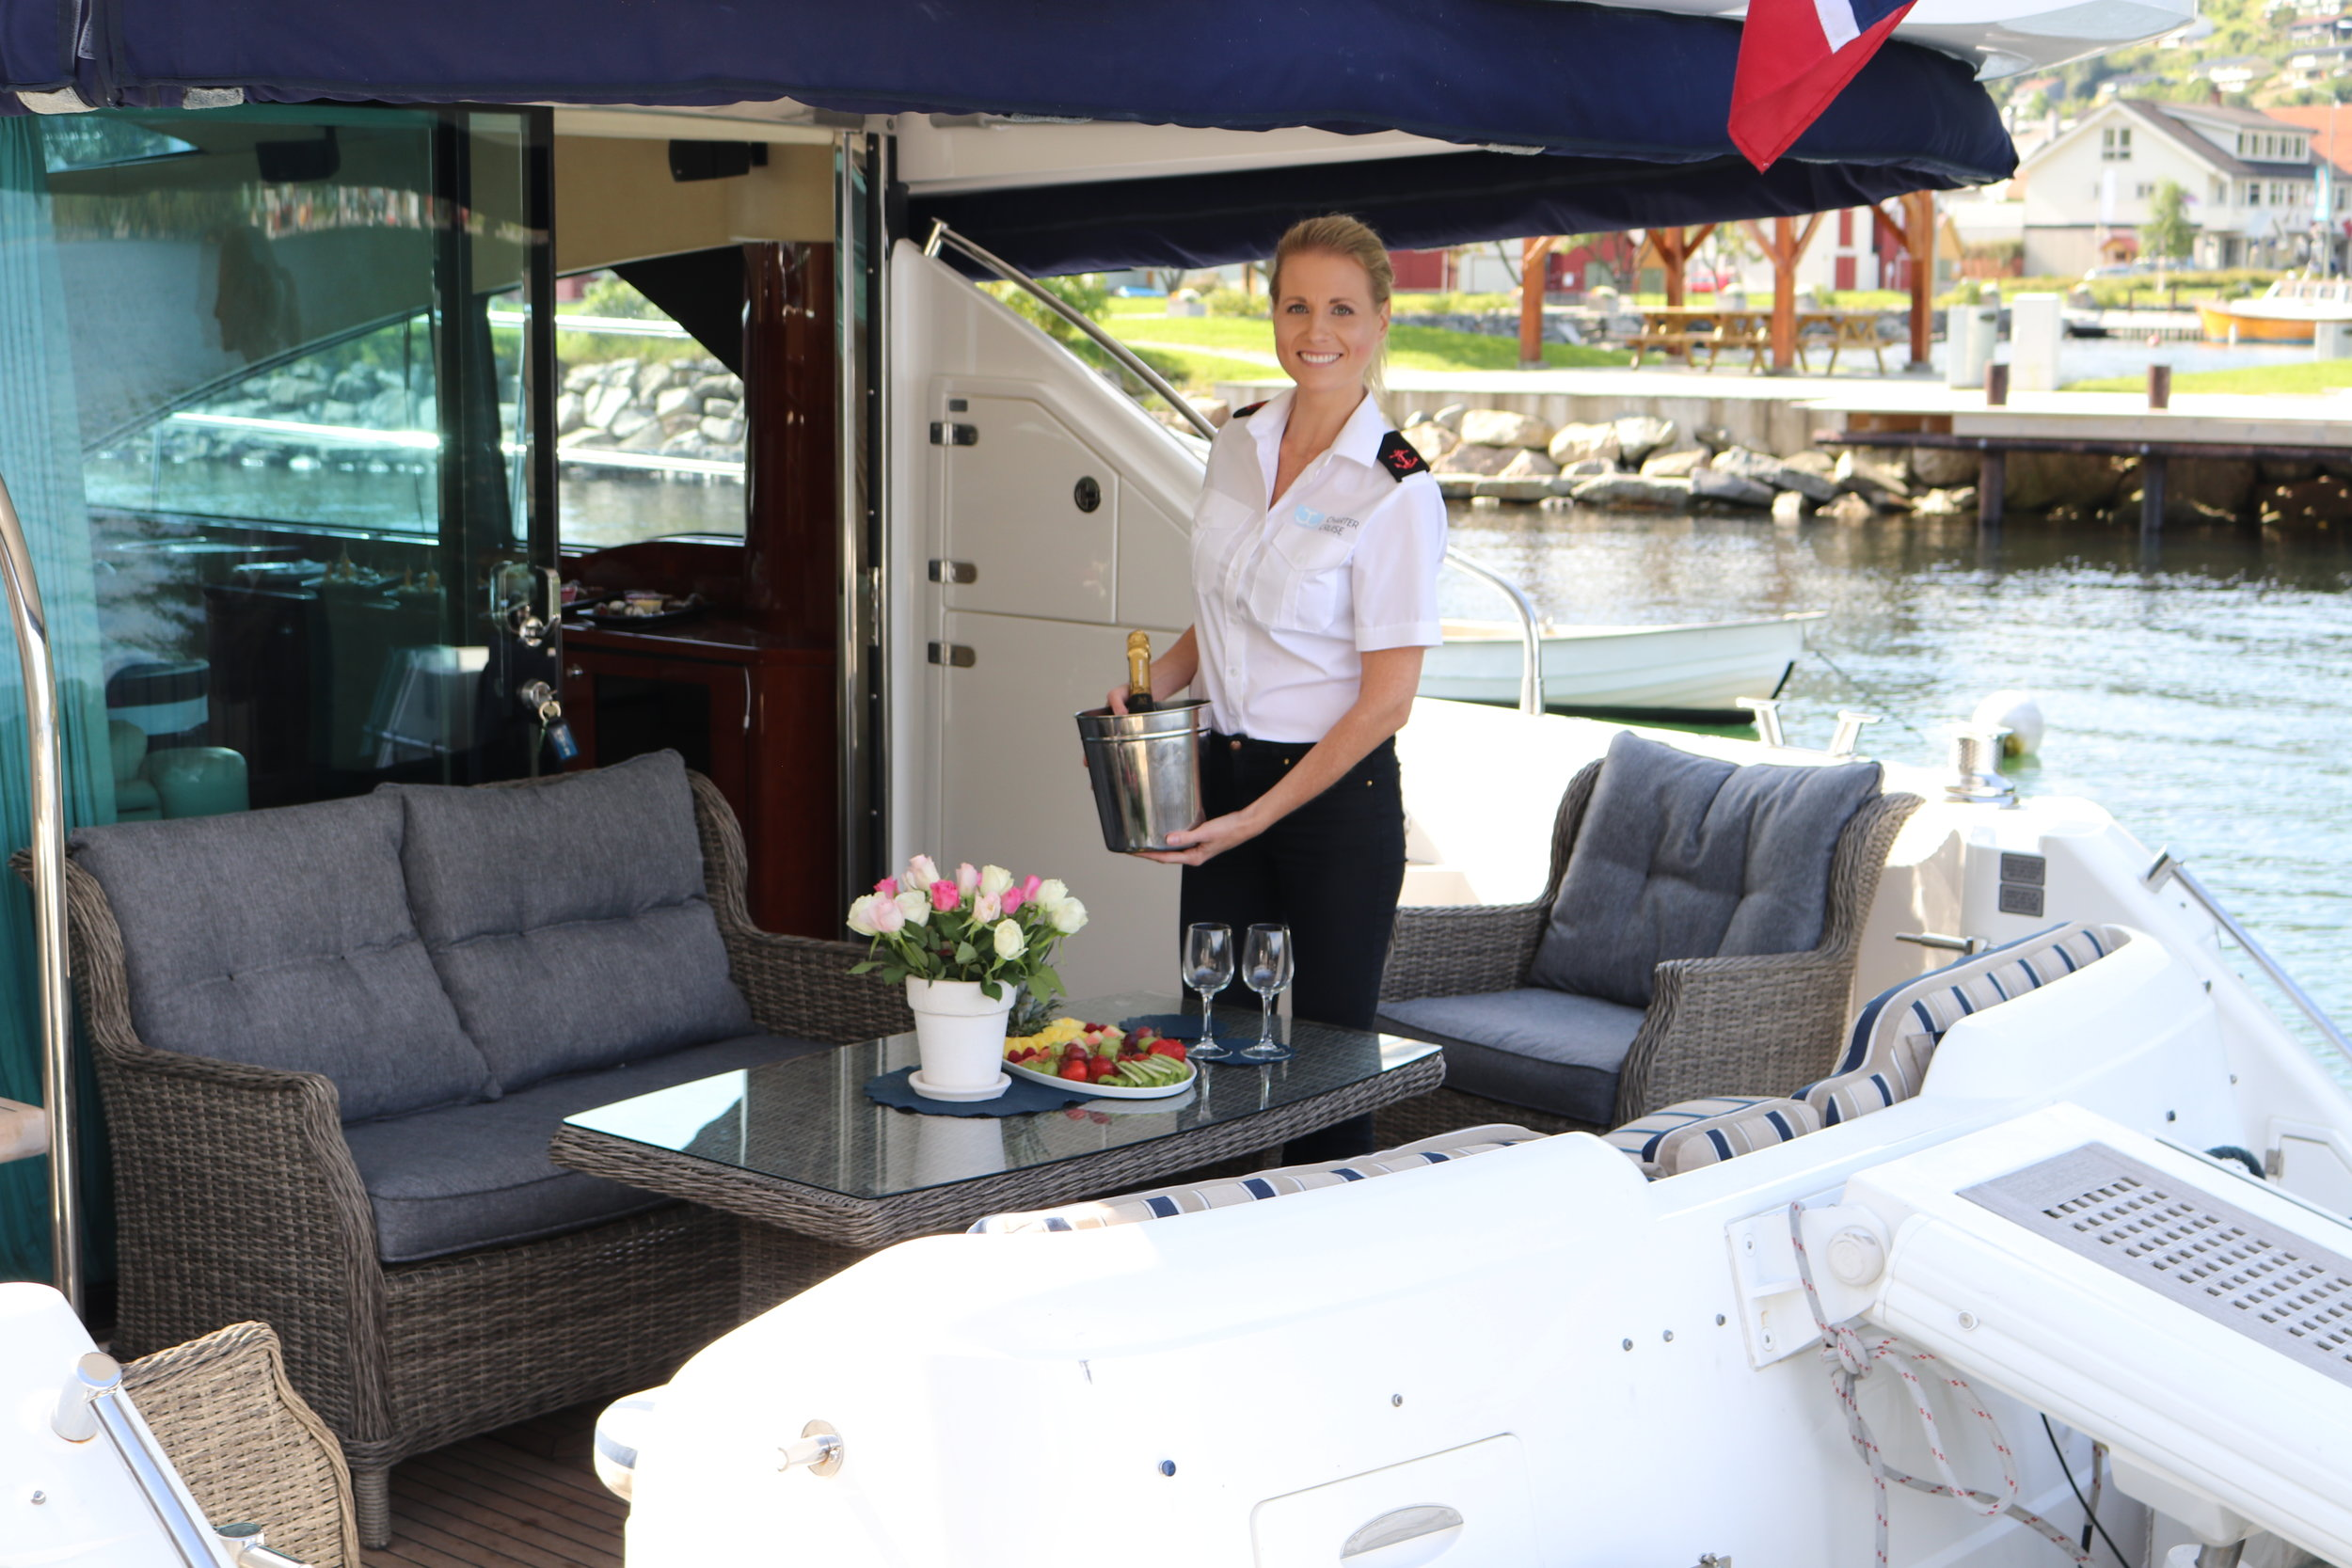 VIP Fjord Norway. Choose from a number of services: Private Cruise Fjord Norway, VIP Fjord Norway by helicopter, Fjord Norway Limousine Service, RIB Charter Fjord Norway.